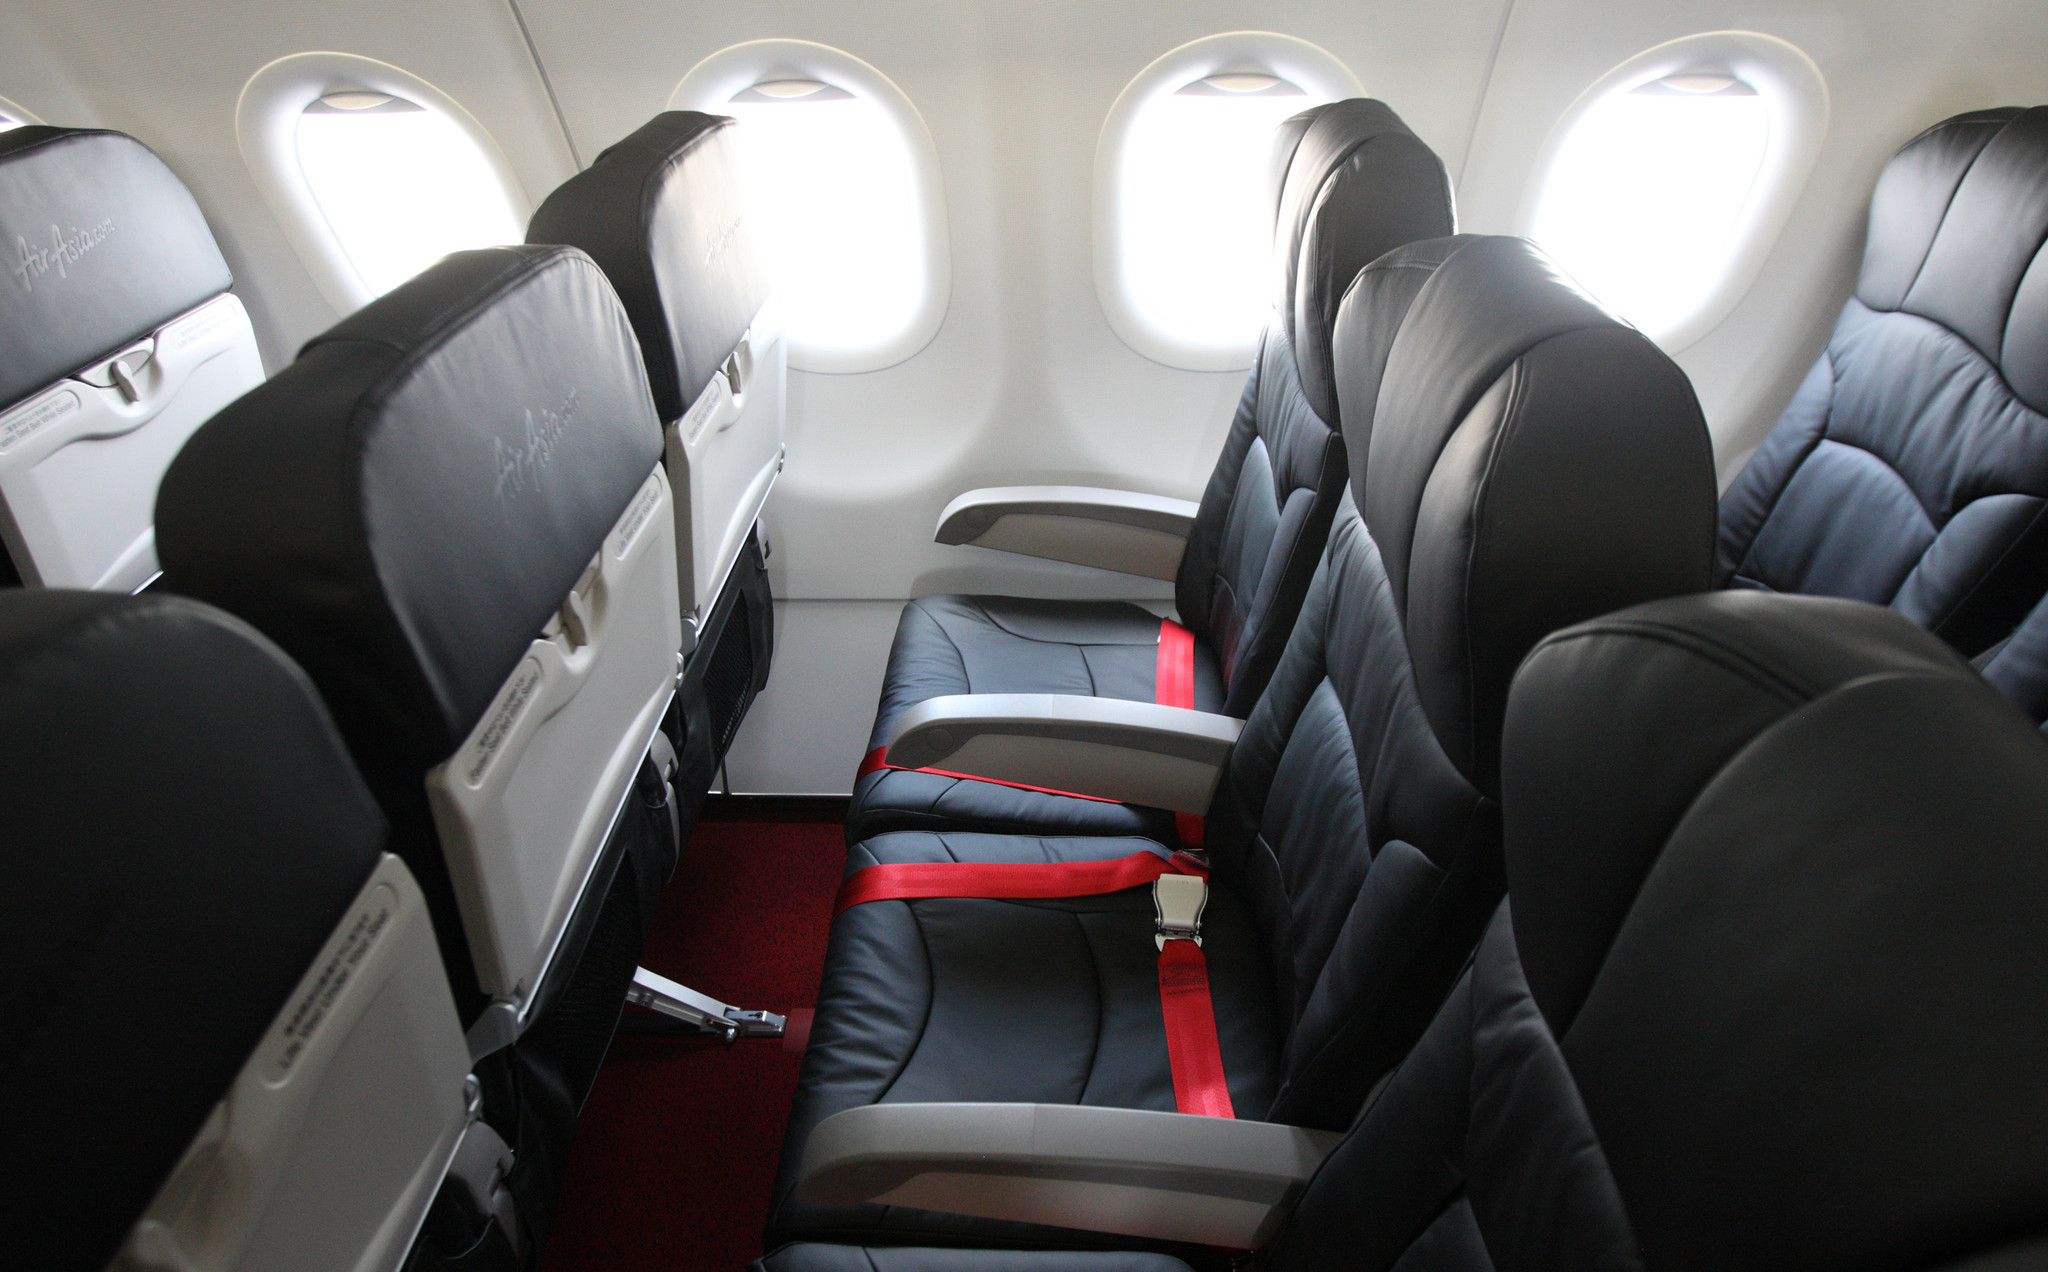 Want more legroom on your flight? Pay for it. - Chicago Tribune